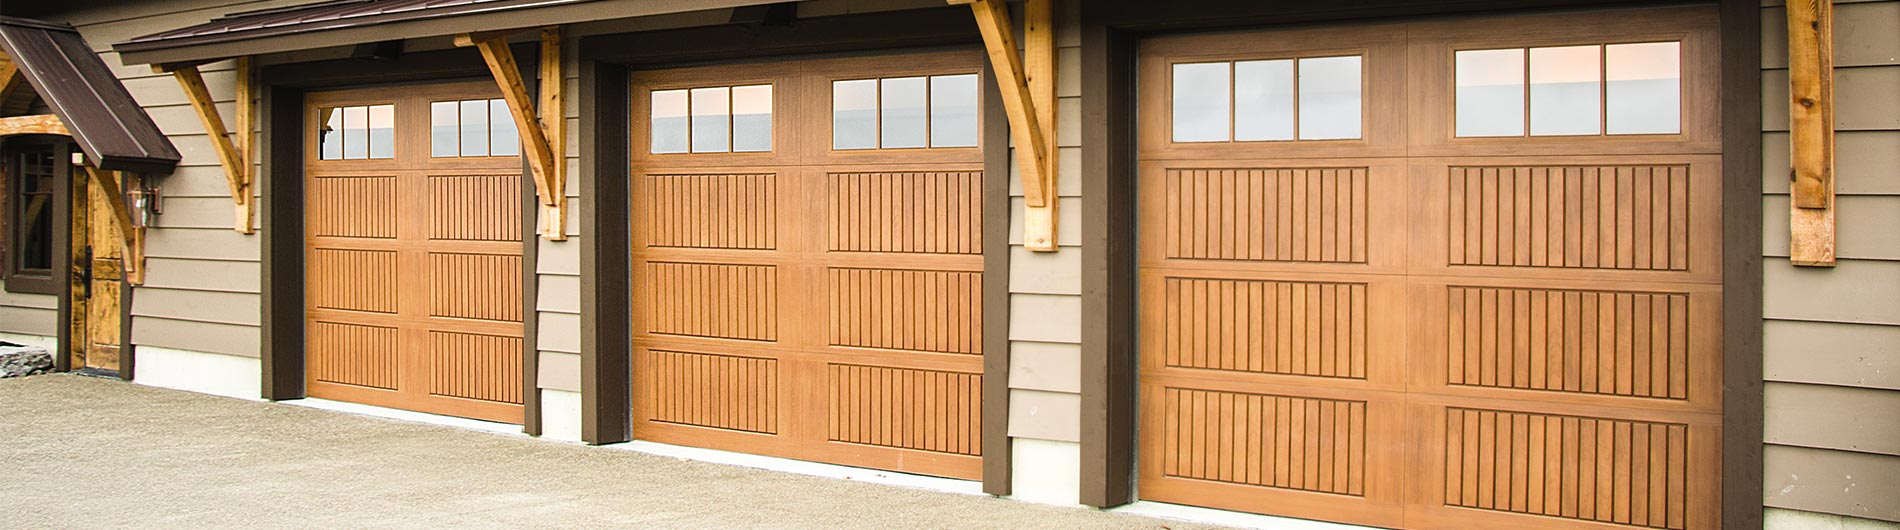 9800-Fiberglass-Garage-Door-8ft-Sonoma-NaturalOak-6LiteSquare.jpg